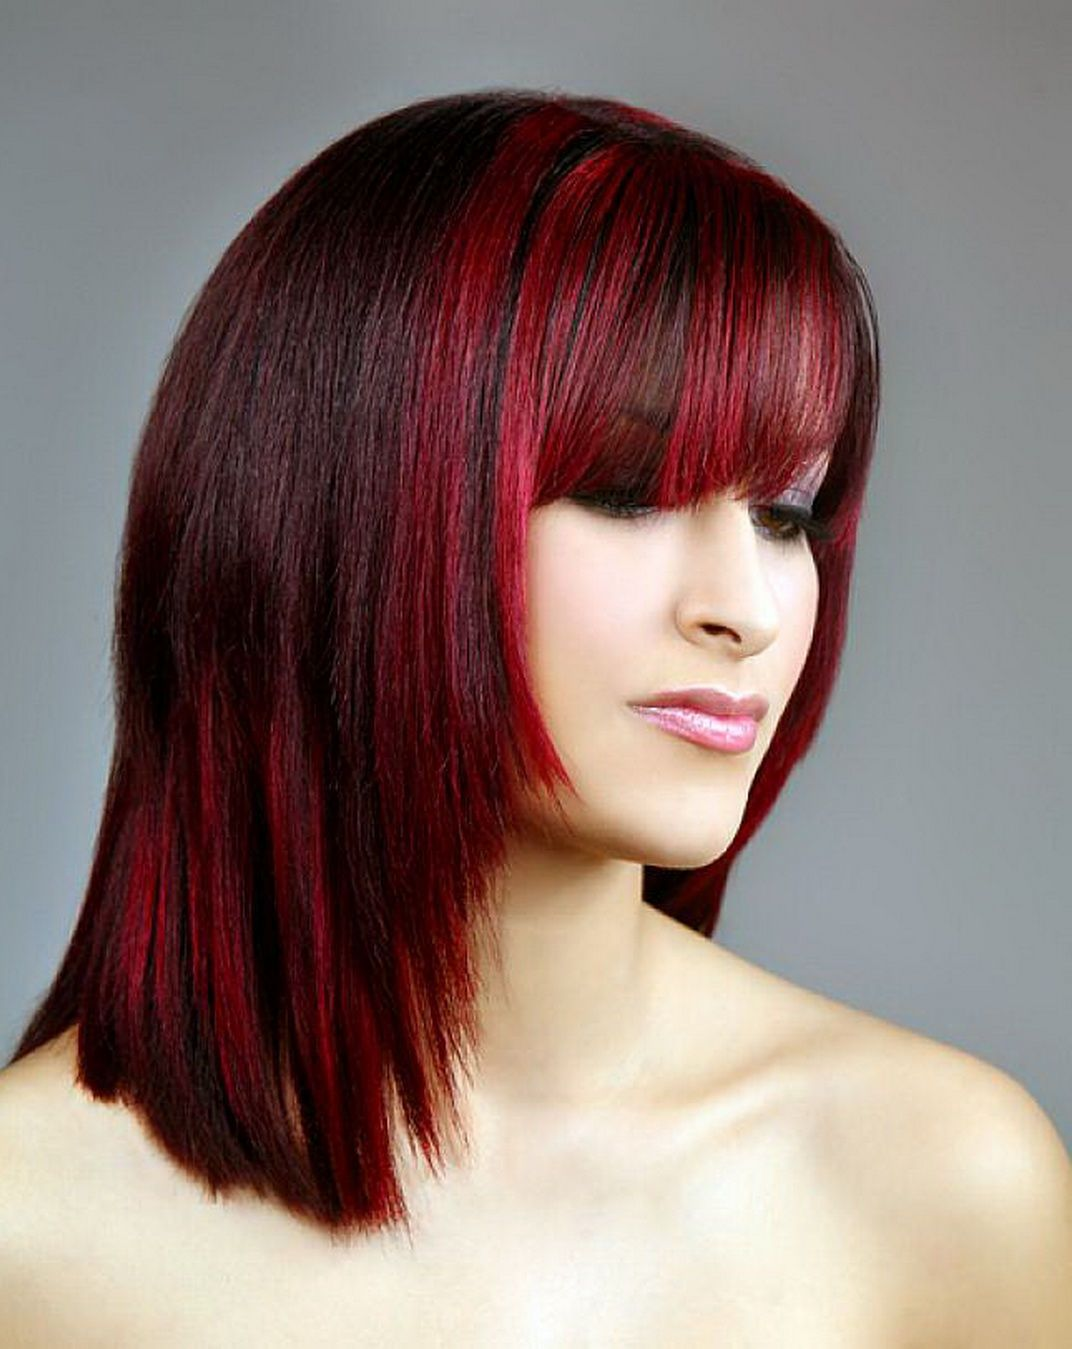 Hair Highlights Latest Trends High Resolution Images